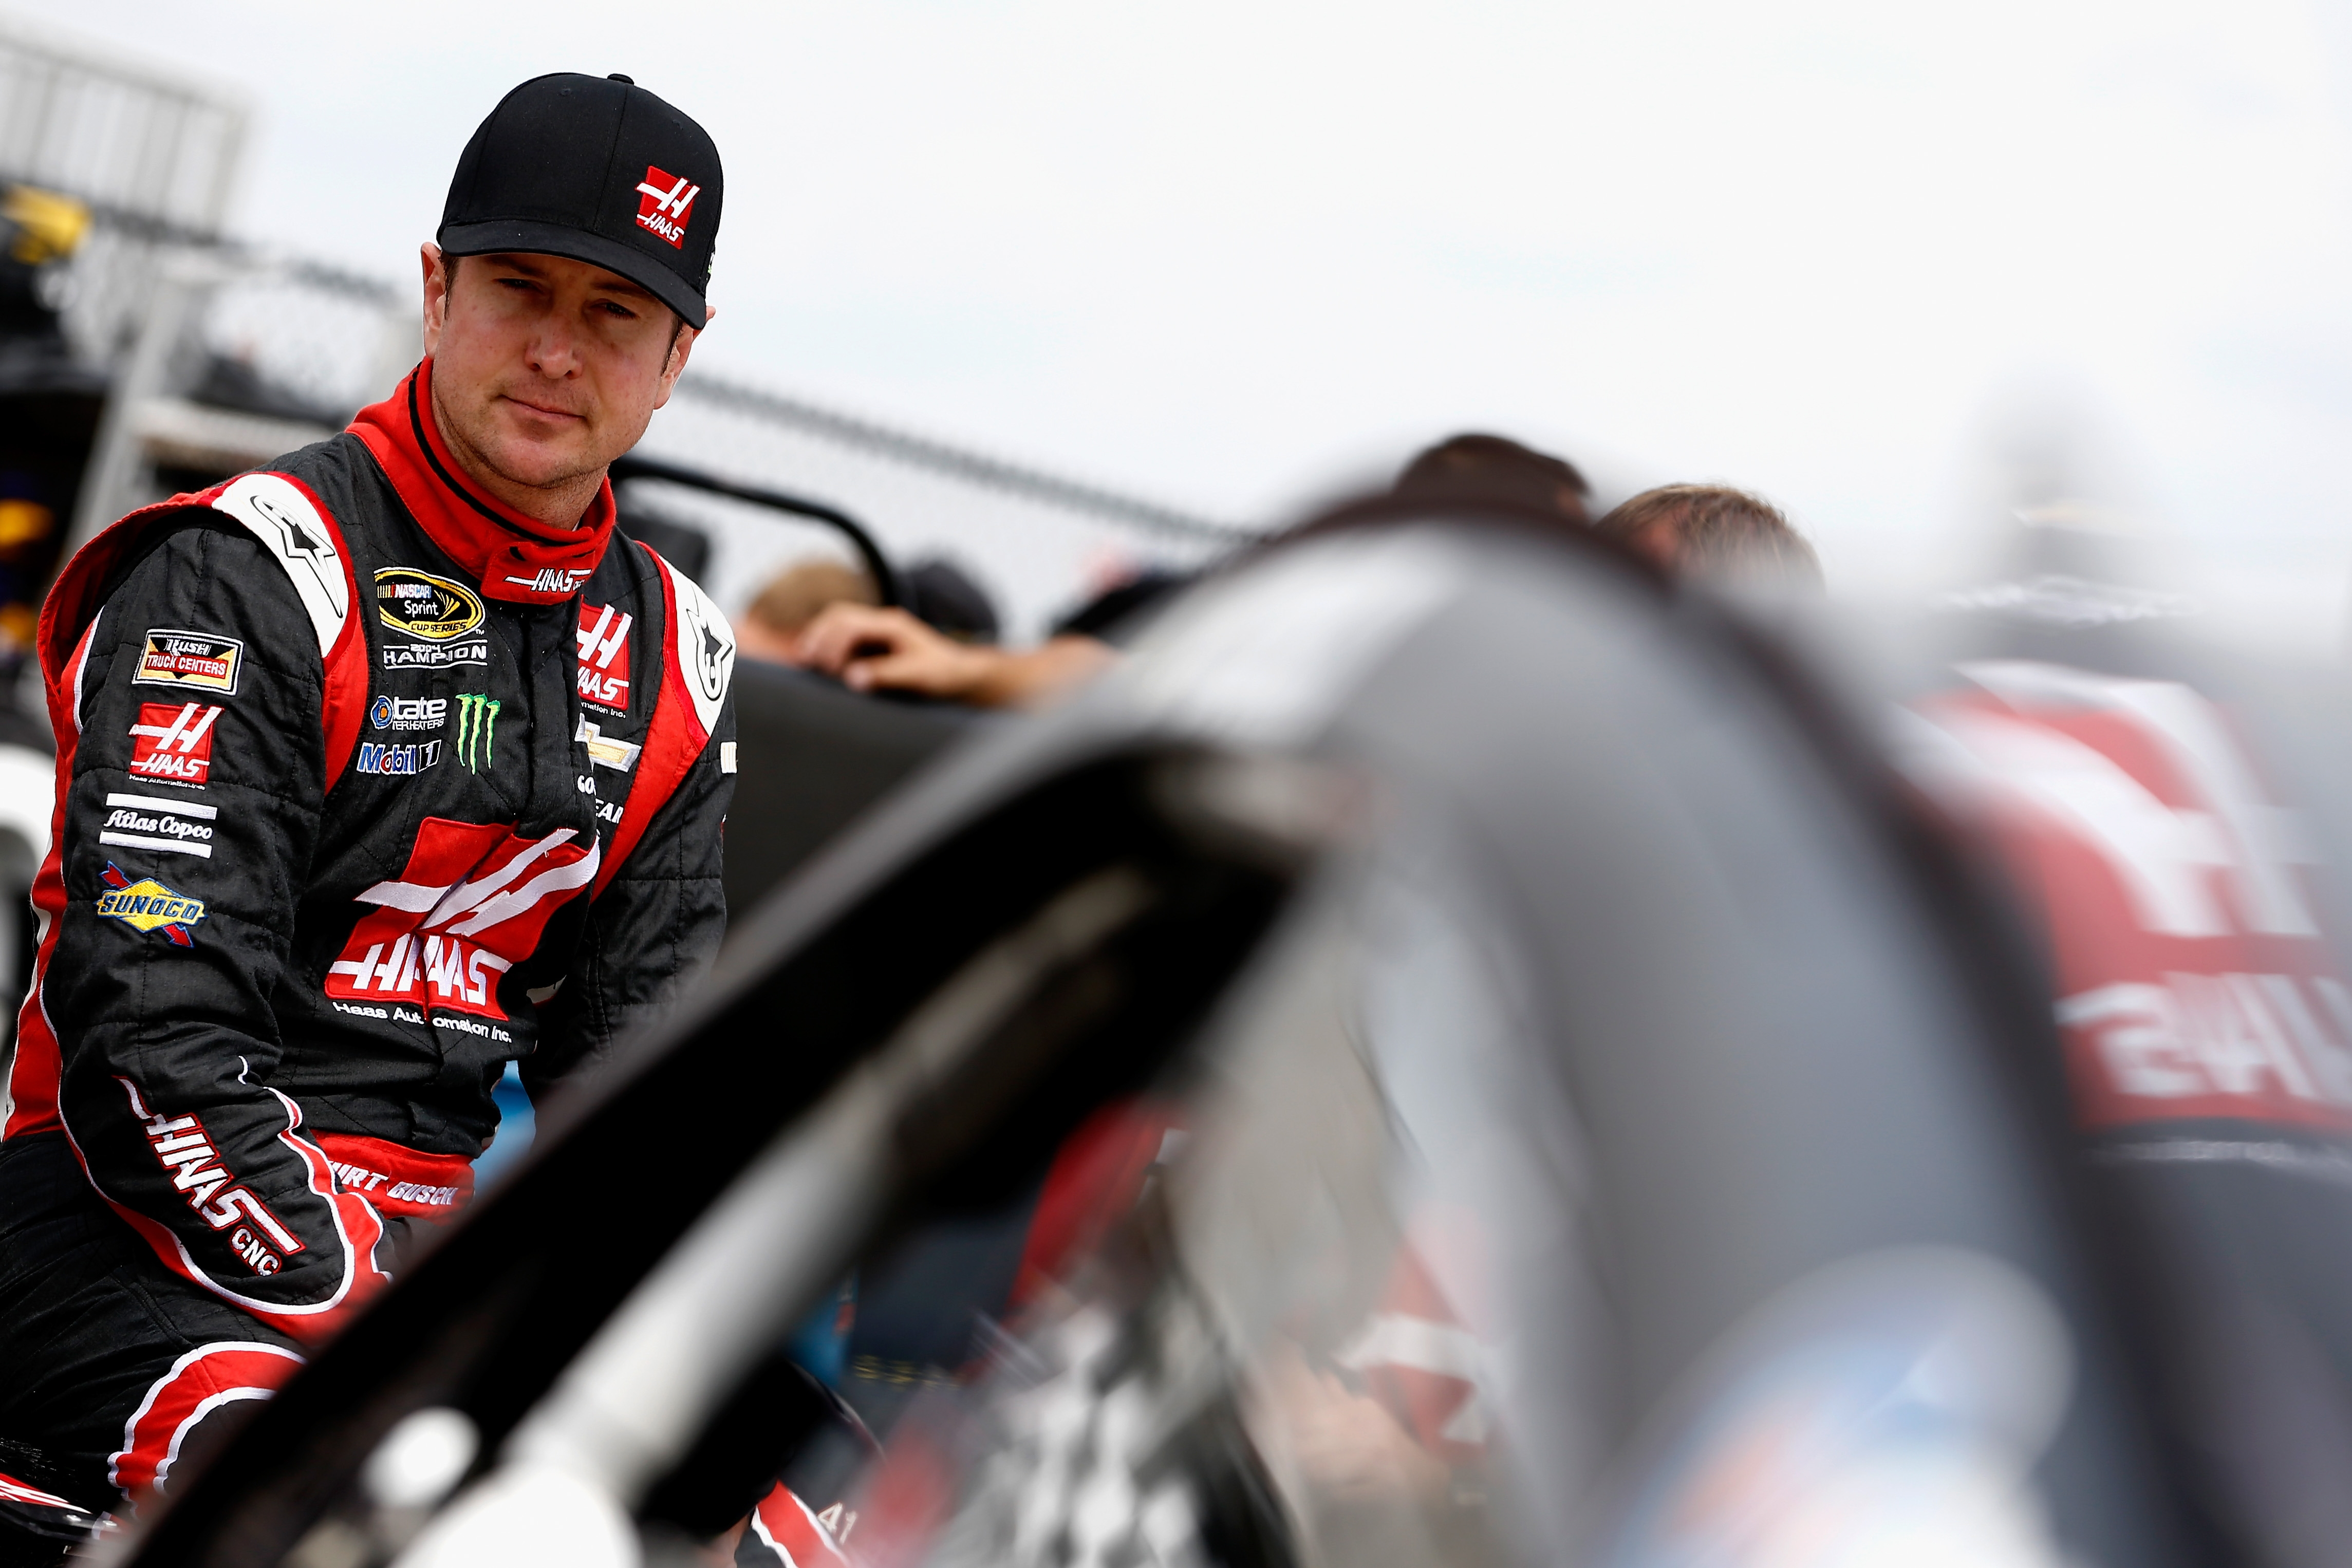 Kurt Busch has one win in NASCAR's Chase for the Cup to go with four top-10 finishes so far this season. He was ninth last year at The Glen.